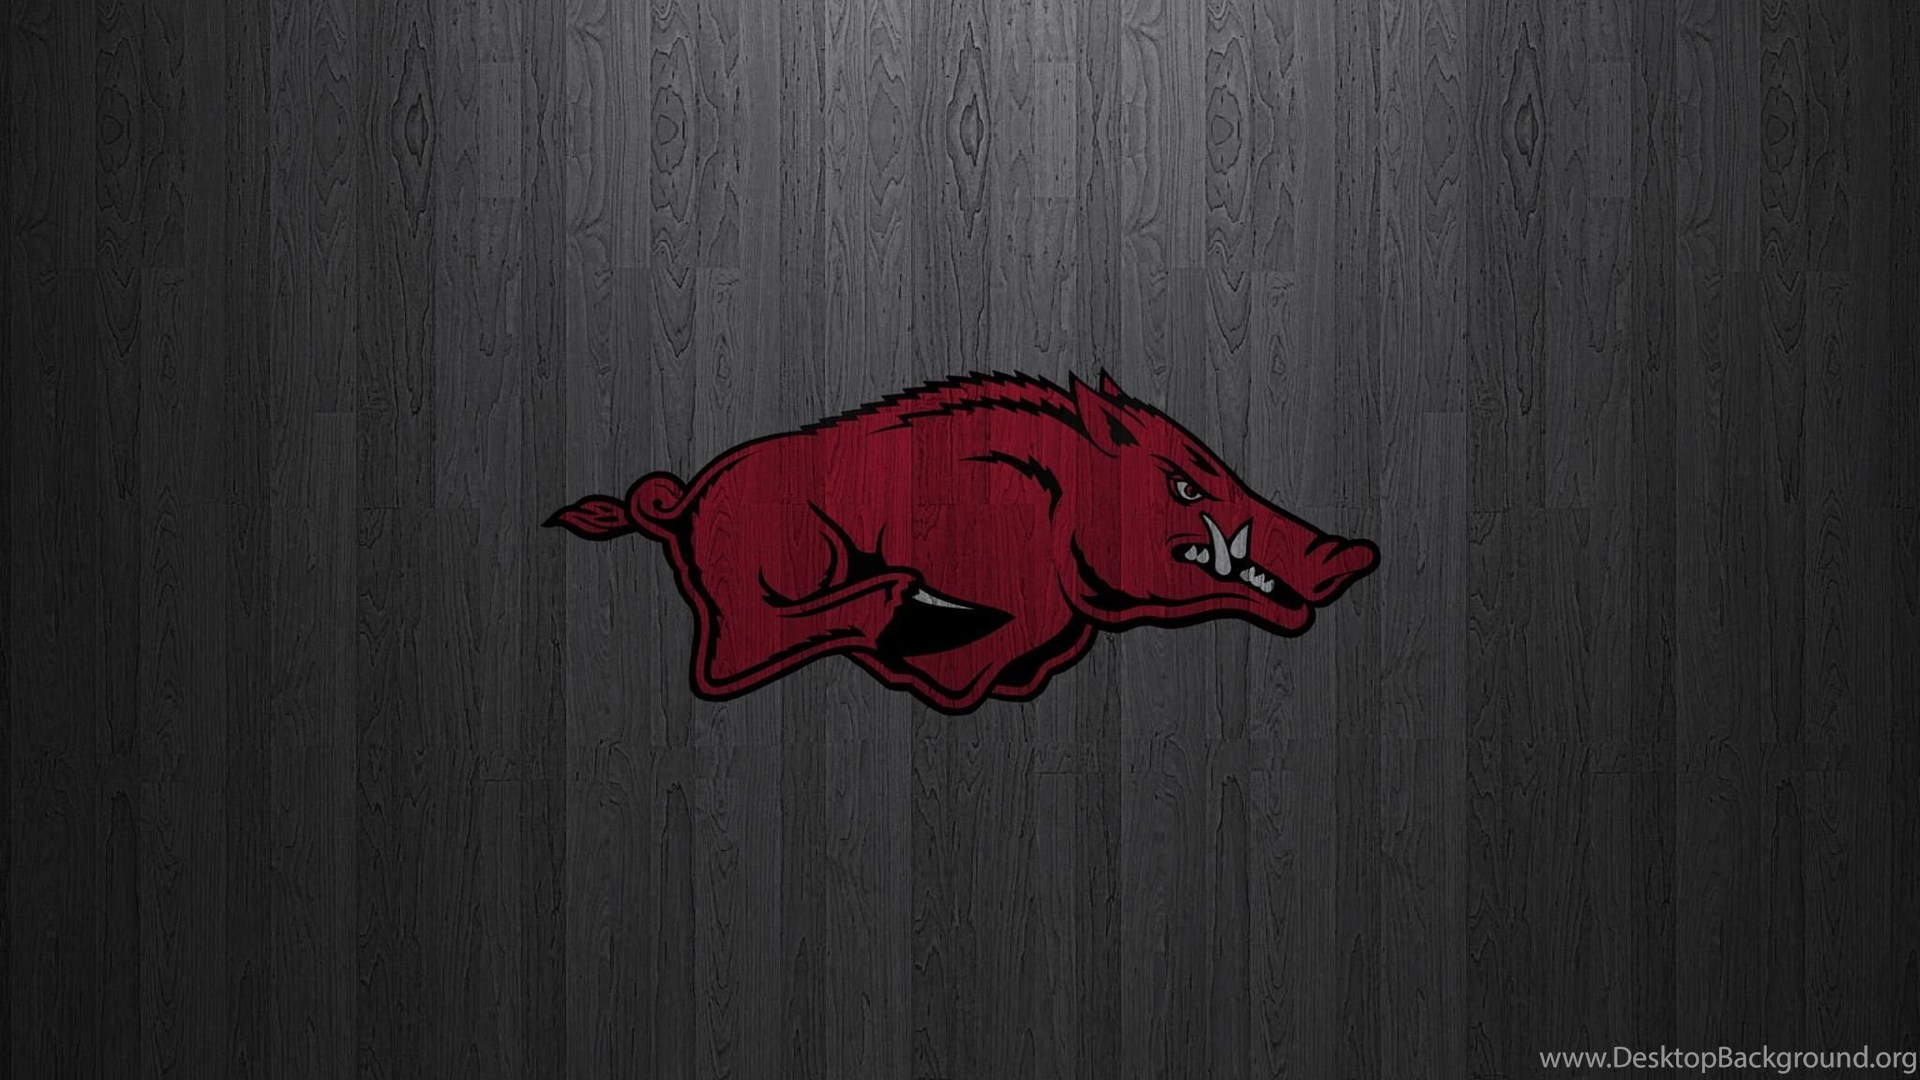 Arkansas Razorbacks Wallpaper HD Wallpapers Download Free Images Wallpaper [1000image.com]